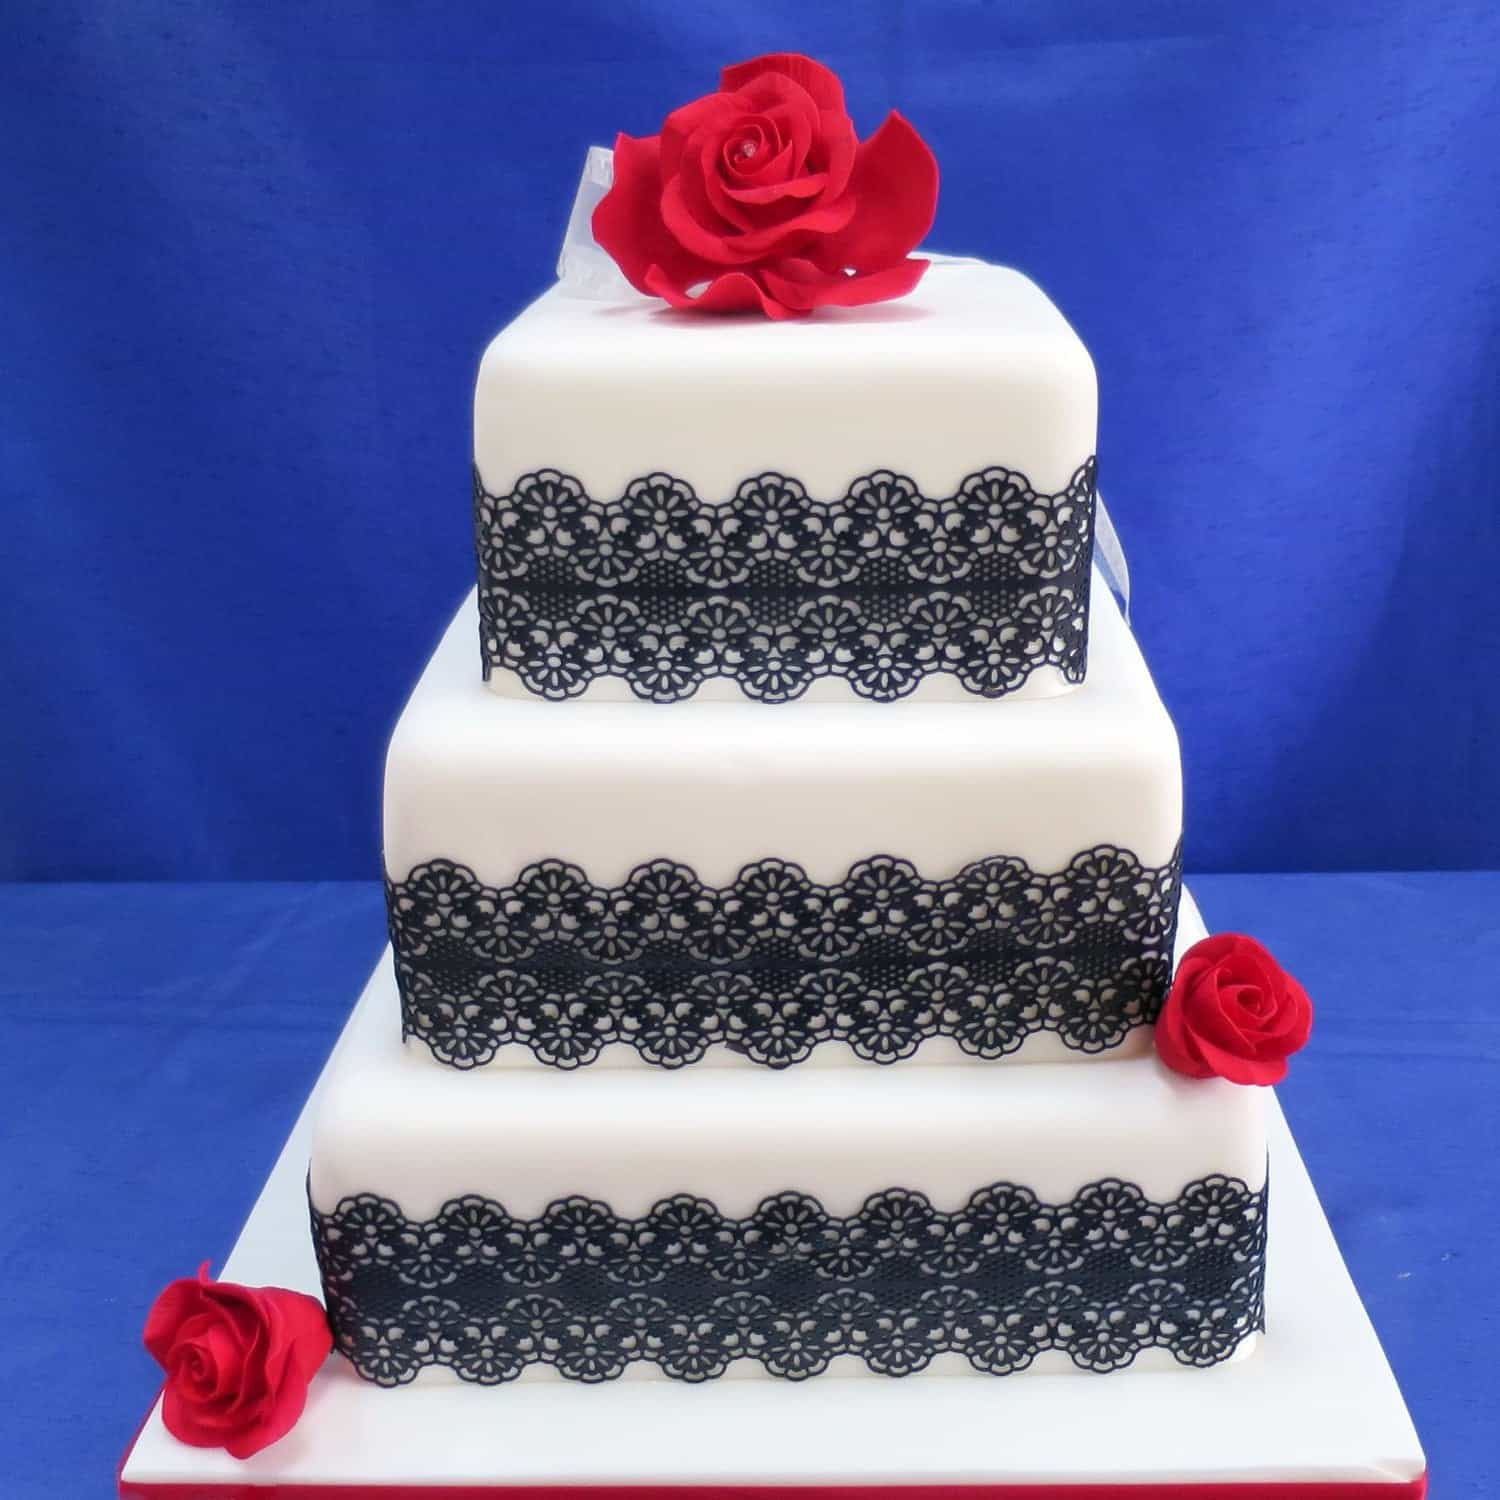 Black And White Classic Square Wedding Cake (Image 1 of 16)